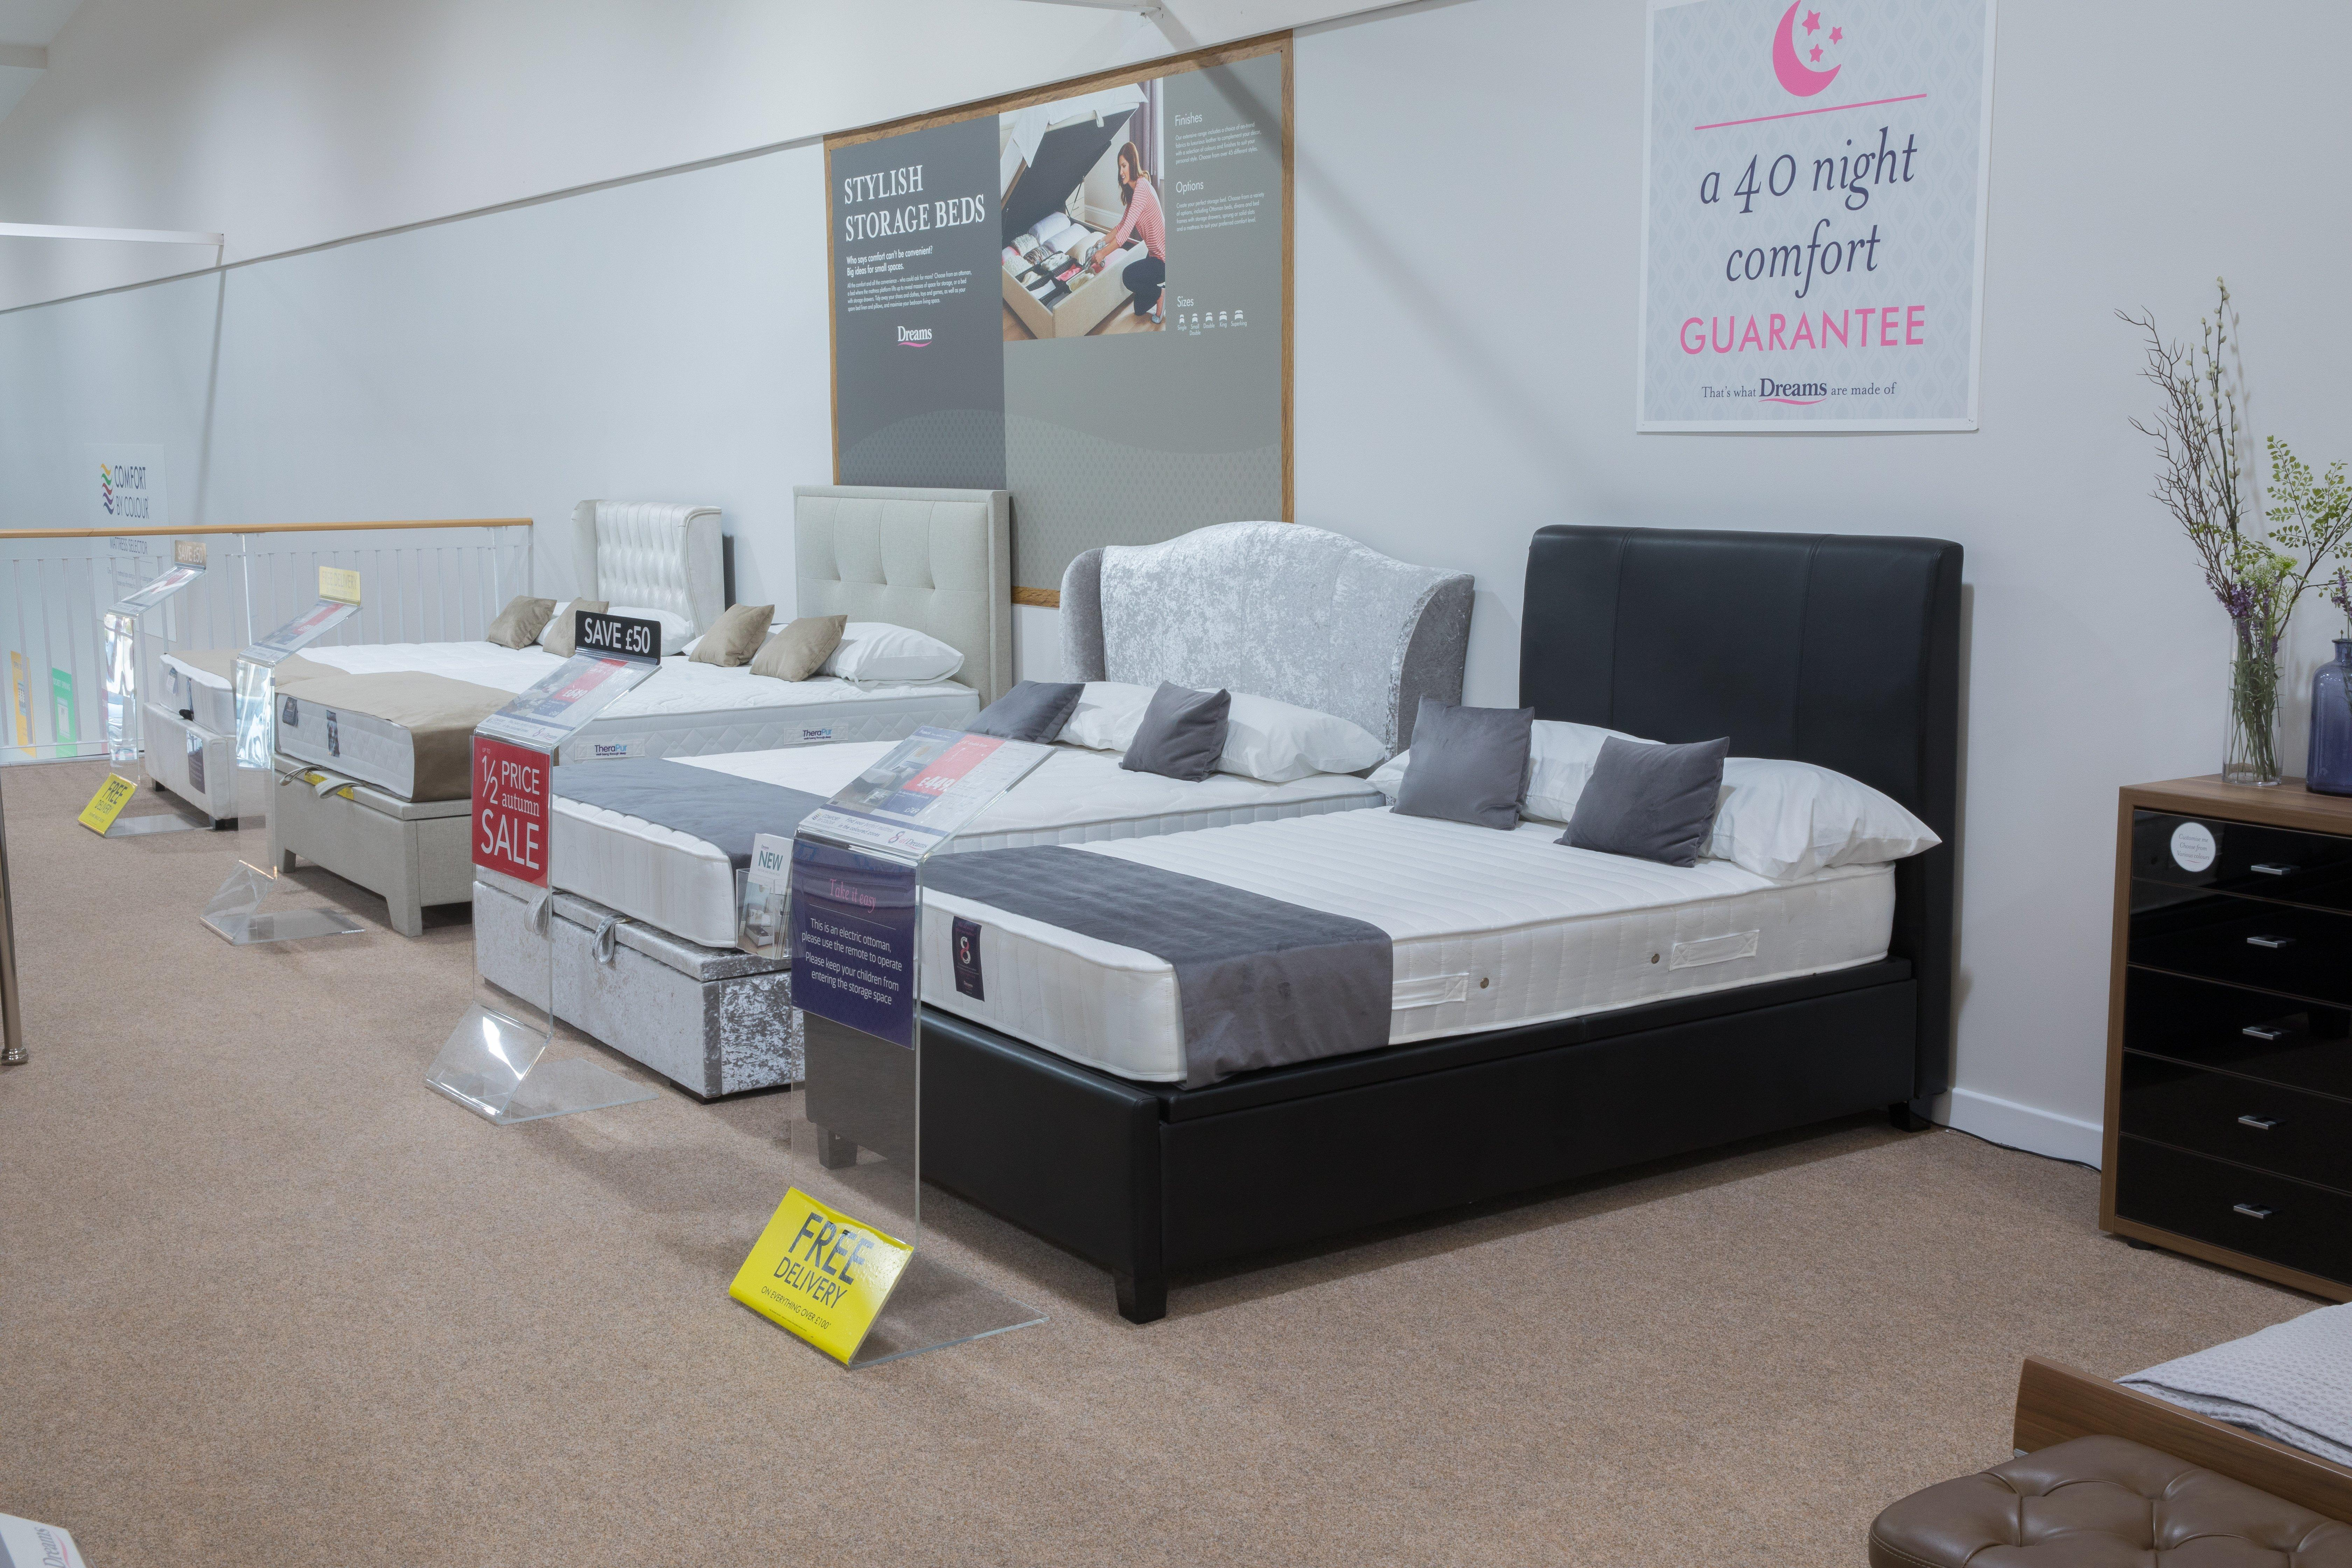 Phenomenal Dreams Store In Nottingham Beds Mattresses Furniture Home Interior And Landscaping Ologienasavecom